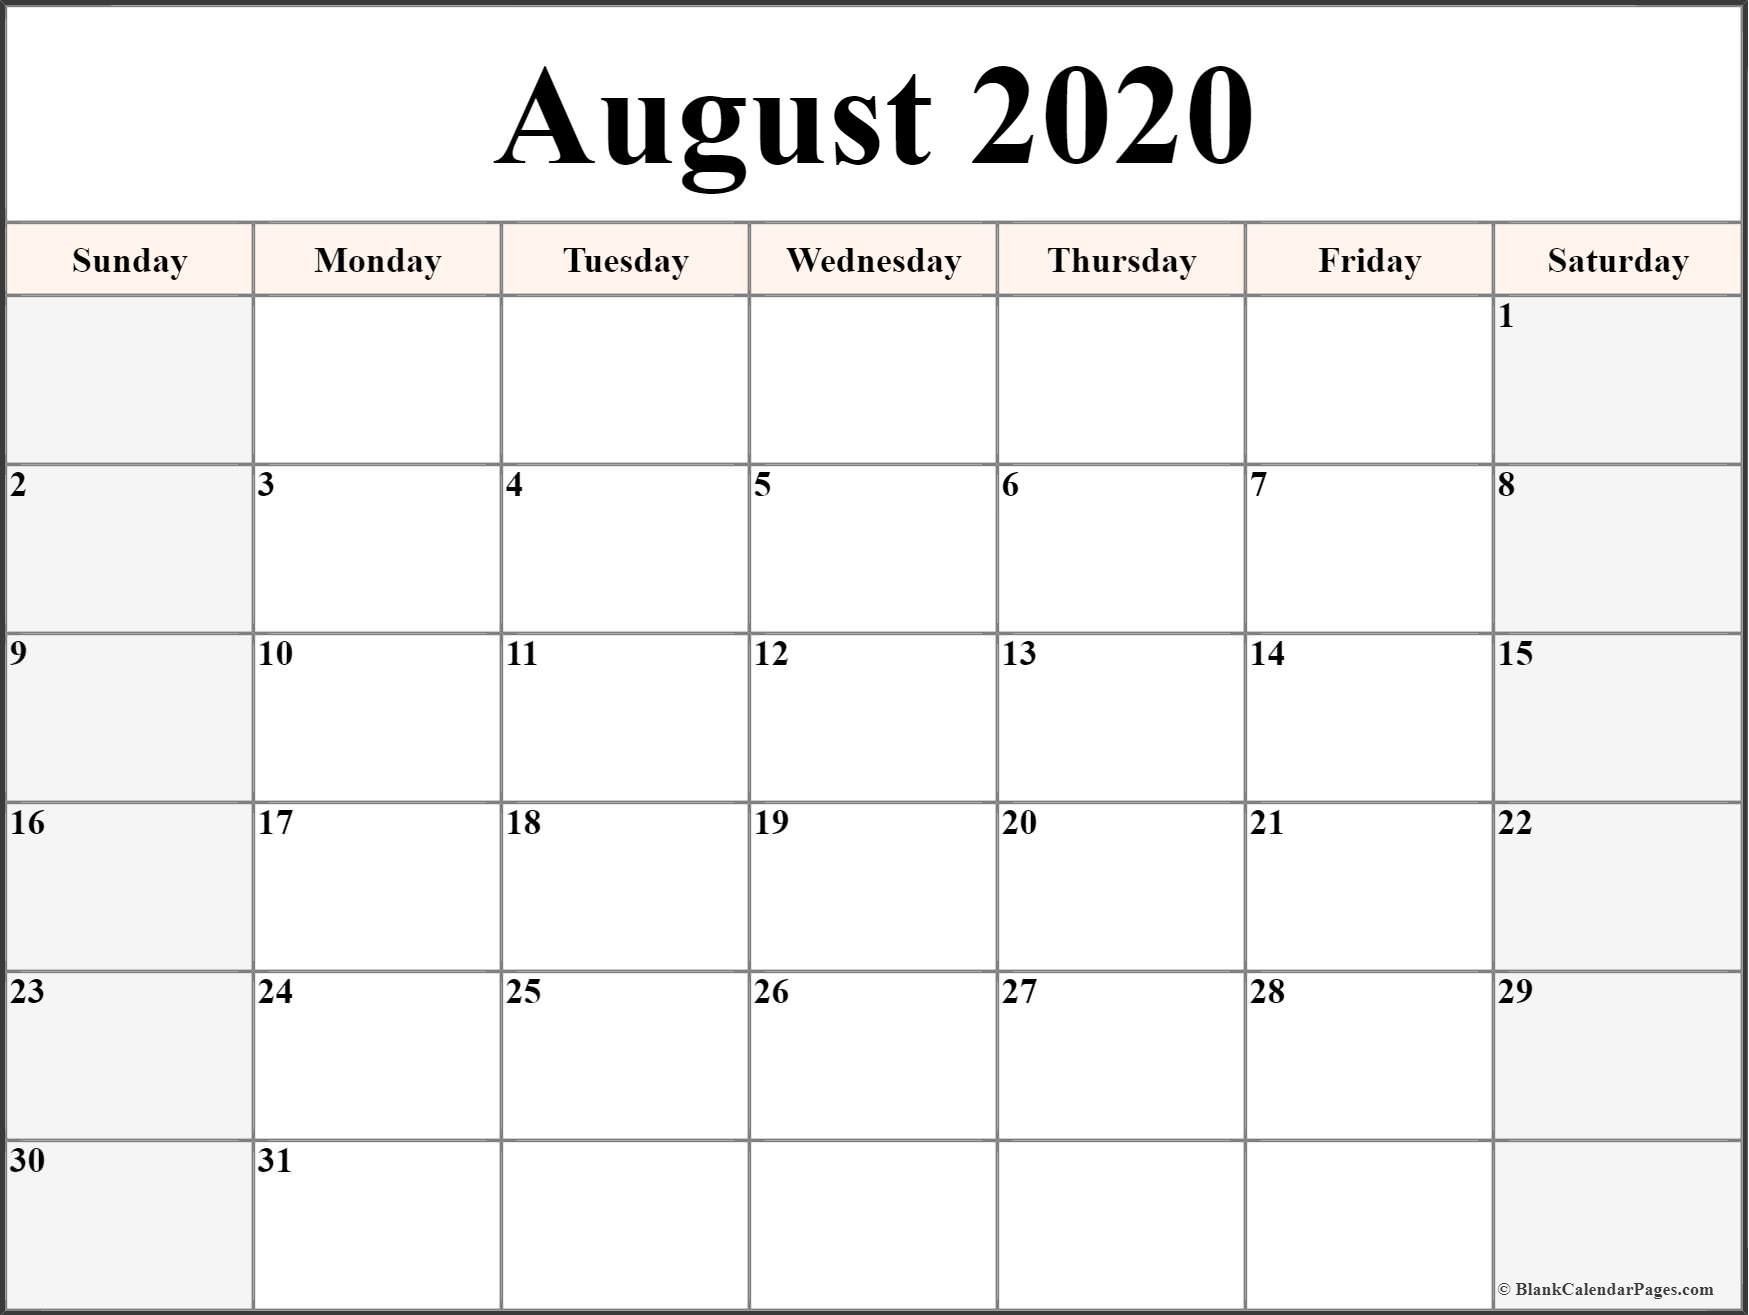 August 2020 Calendar | Free Printable Monthly Calendars  Calendar 2020 August To December Template